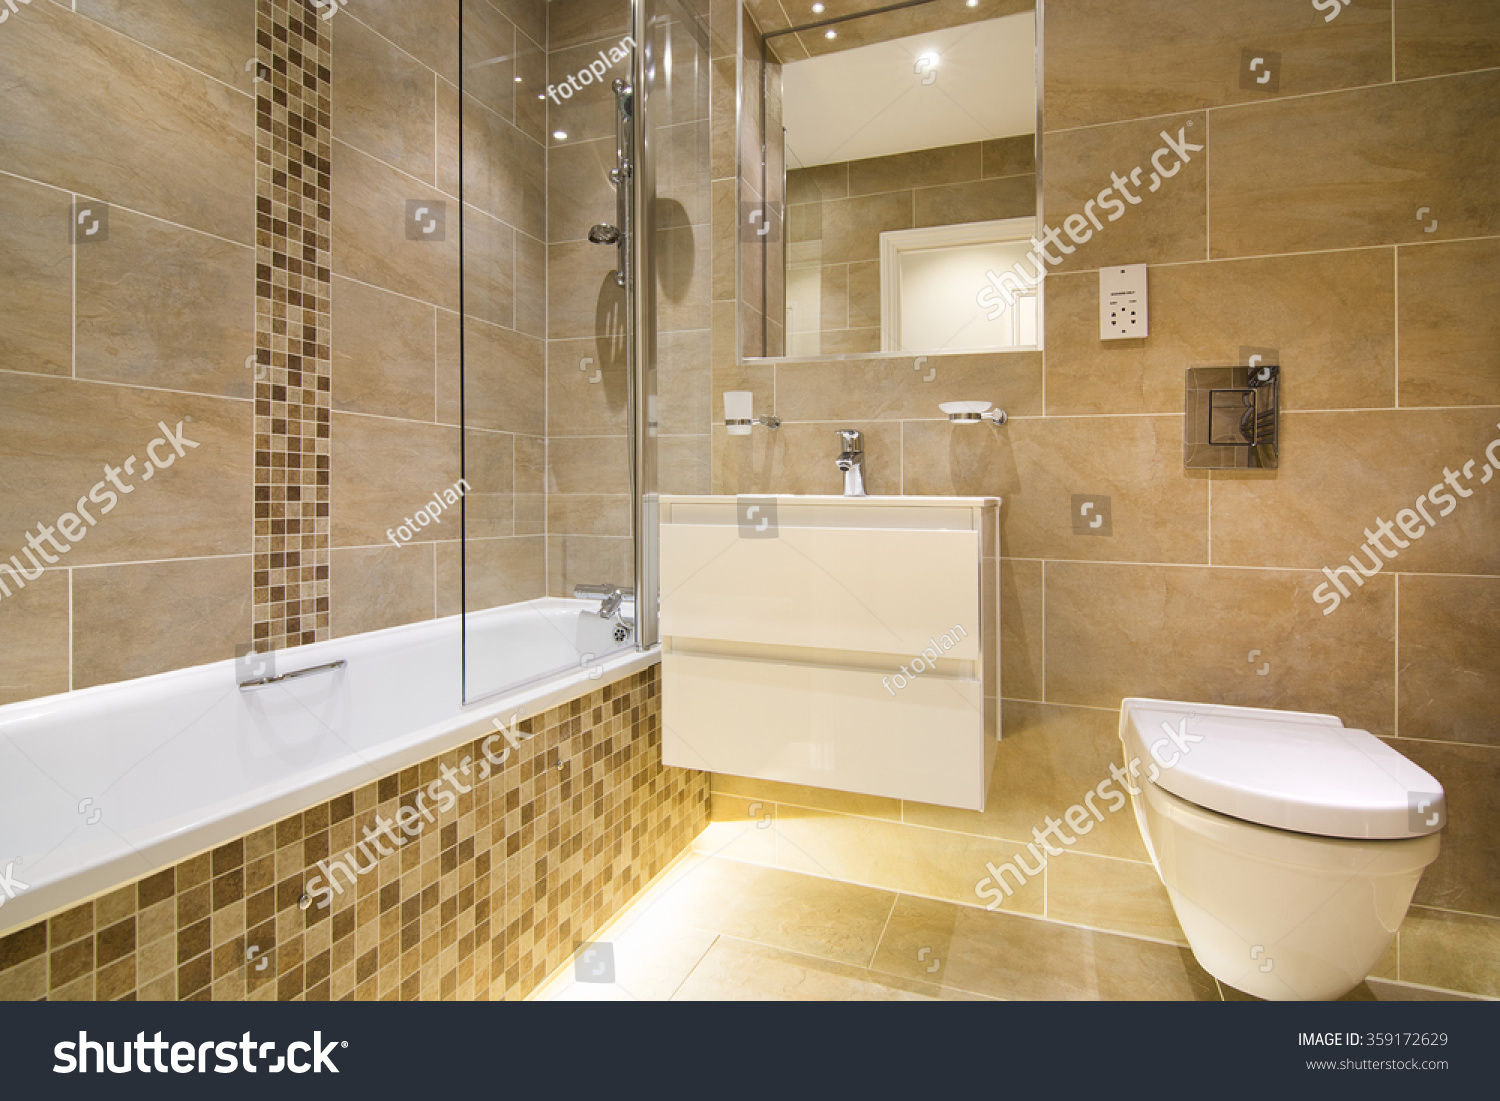 Luxury Three Piece Bathroom In Beige   Brown With Mosaic And Natural Stone  Tiles